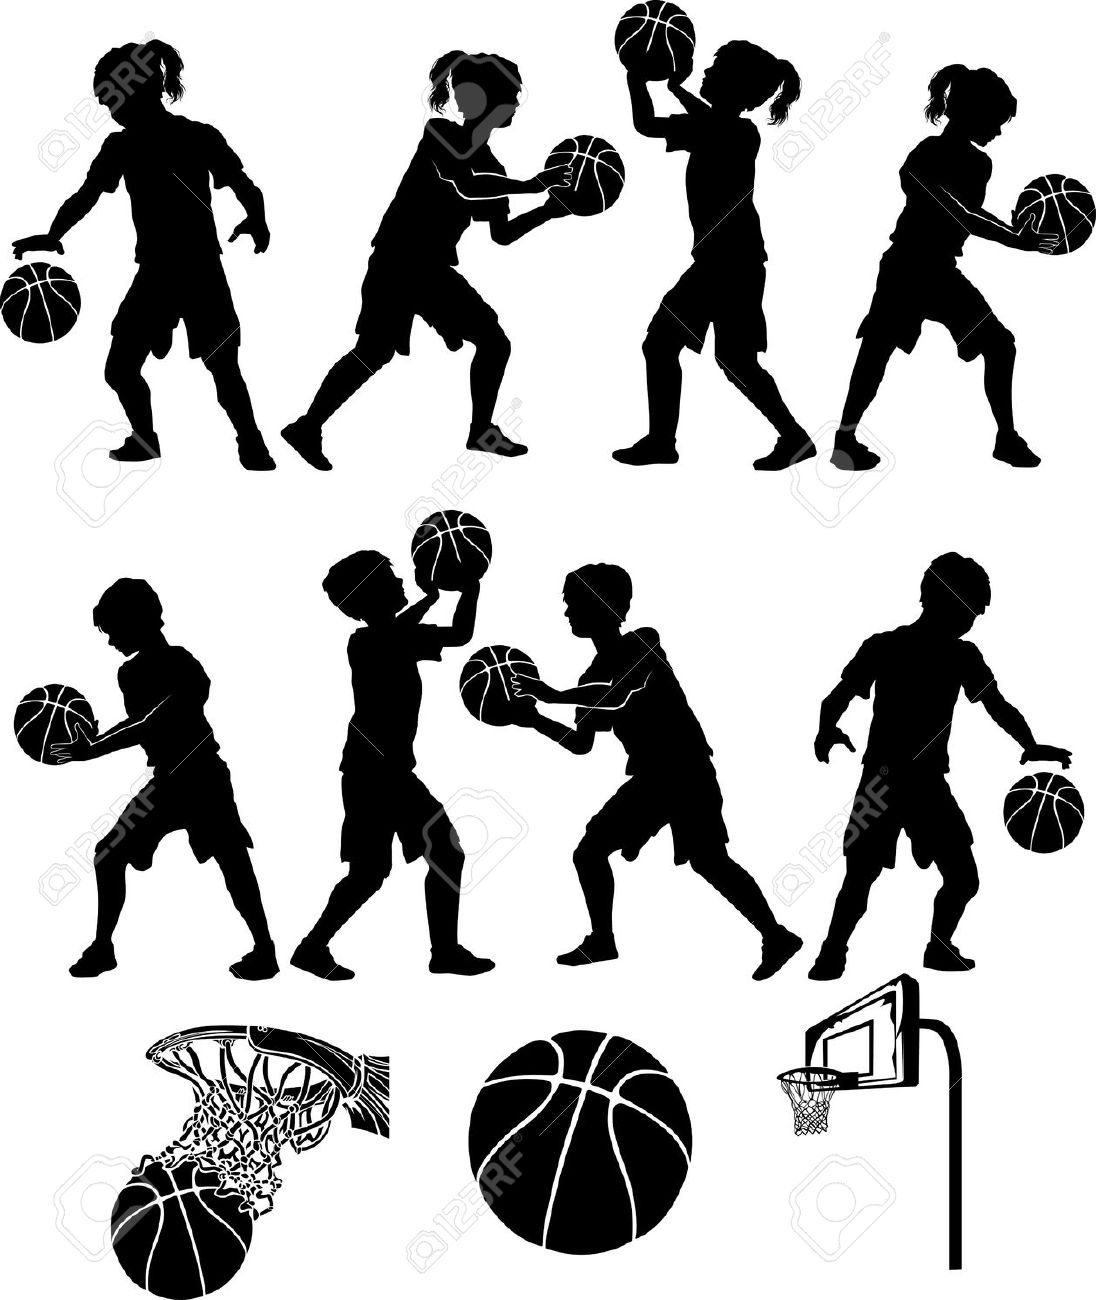 1096x1300 Boys Basketball Silhouette Clipart